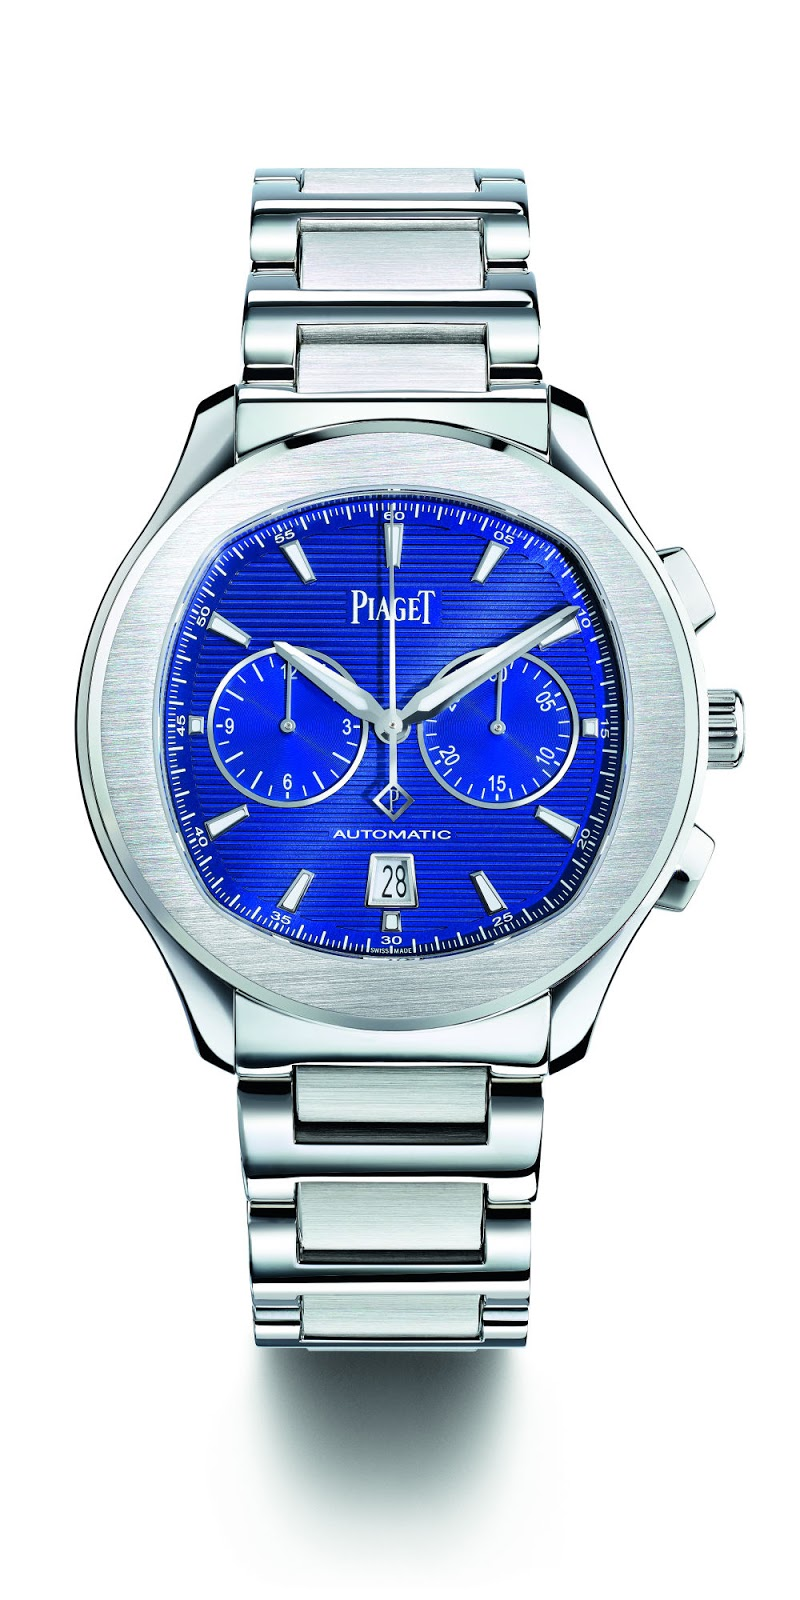 41b497d4efe5d4 Jewelry News Network  Piaget Launches Polo S Watch In New York With ...